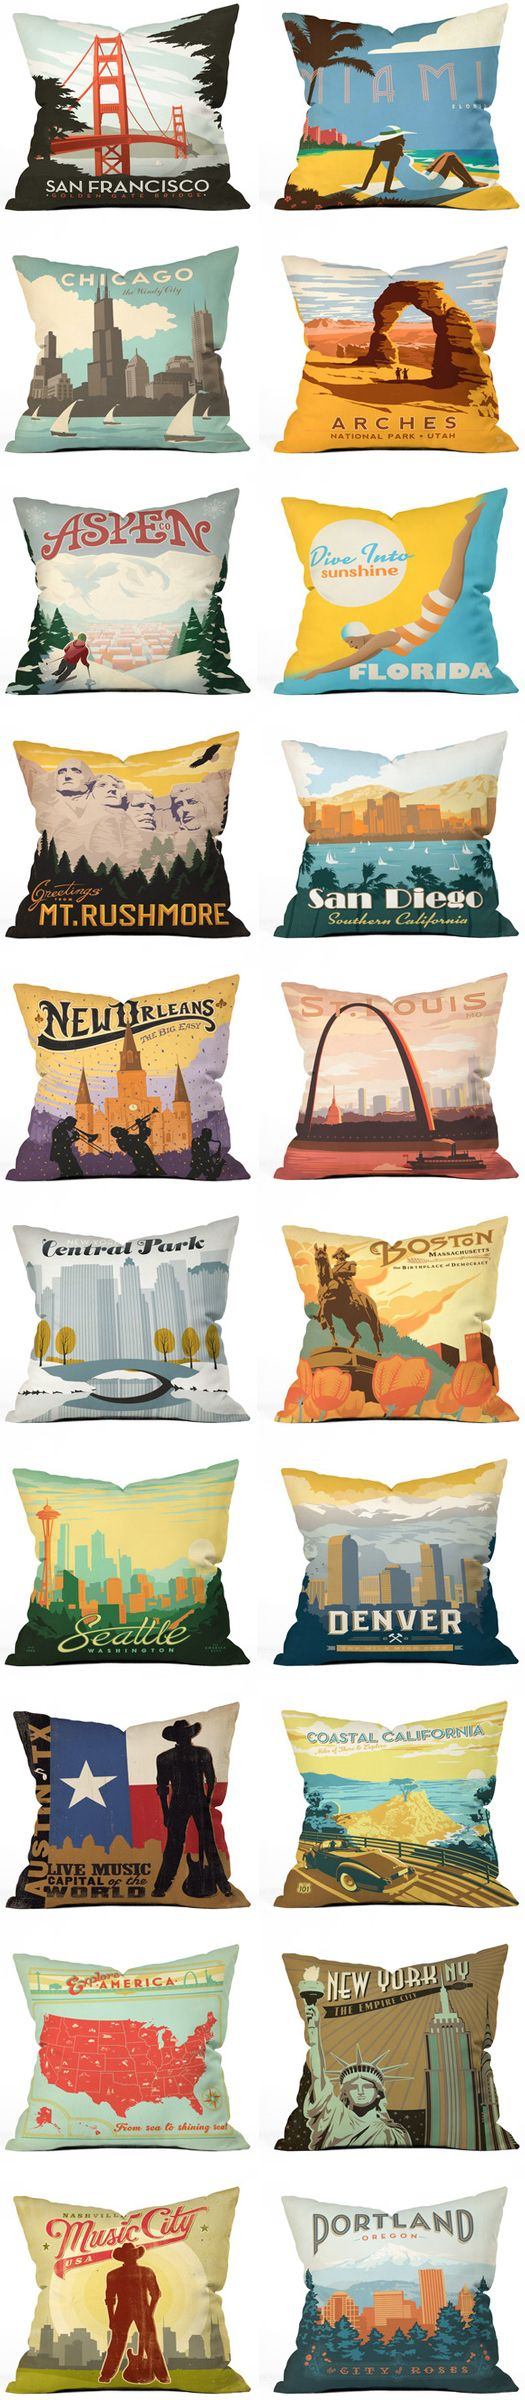 Travel Inspired Pillows (via More Design Please)